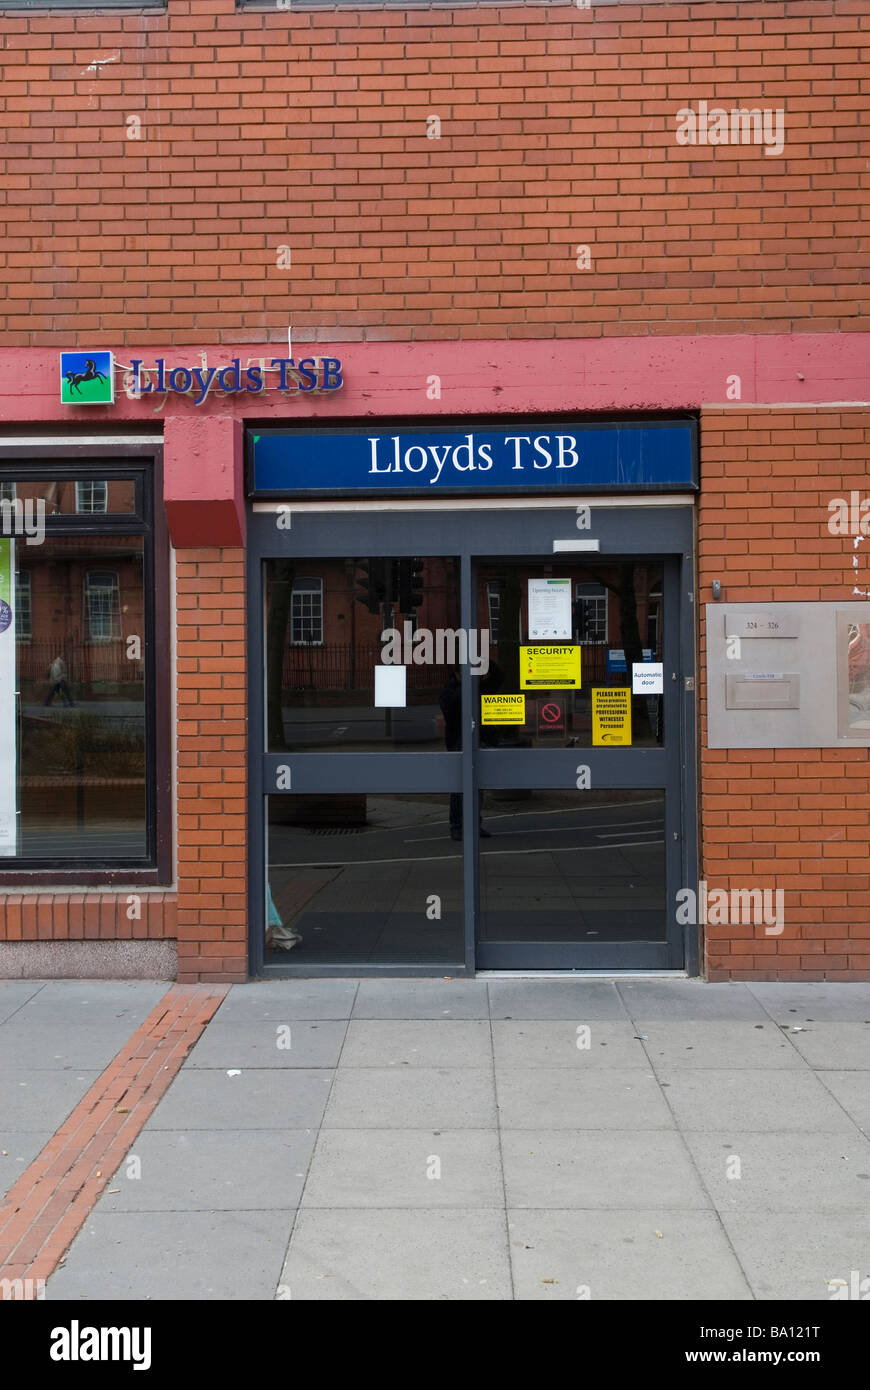 Lloyds TSB Bank in Manchester City Centre UK - Stock Image